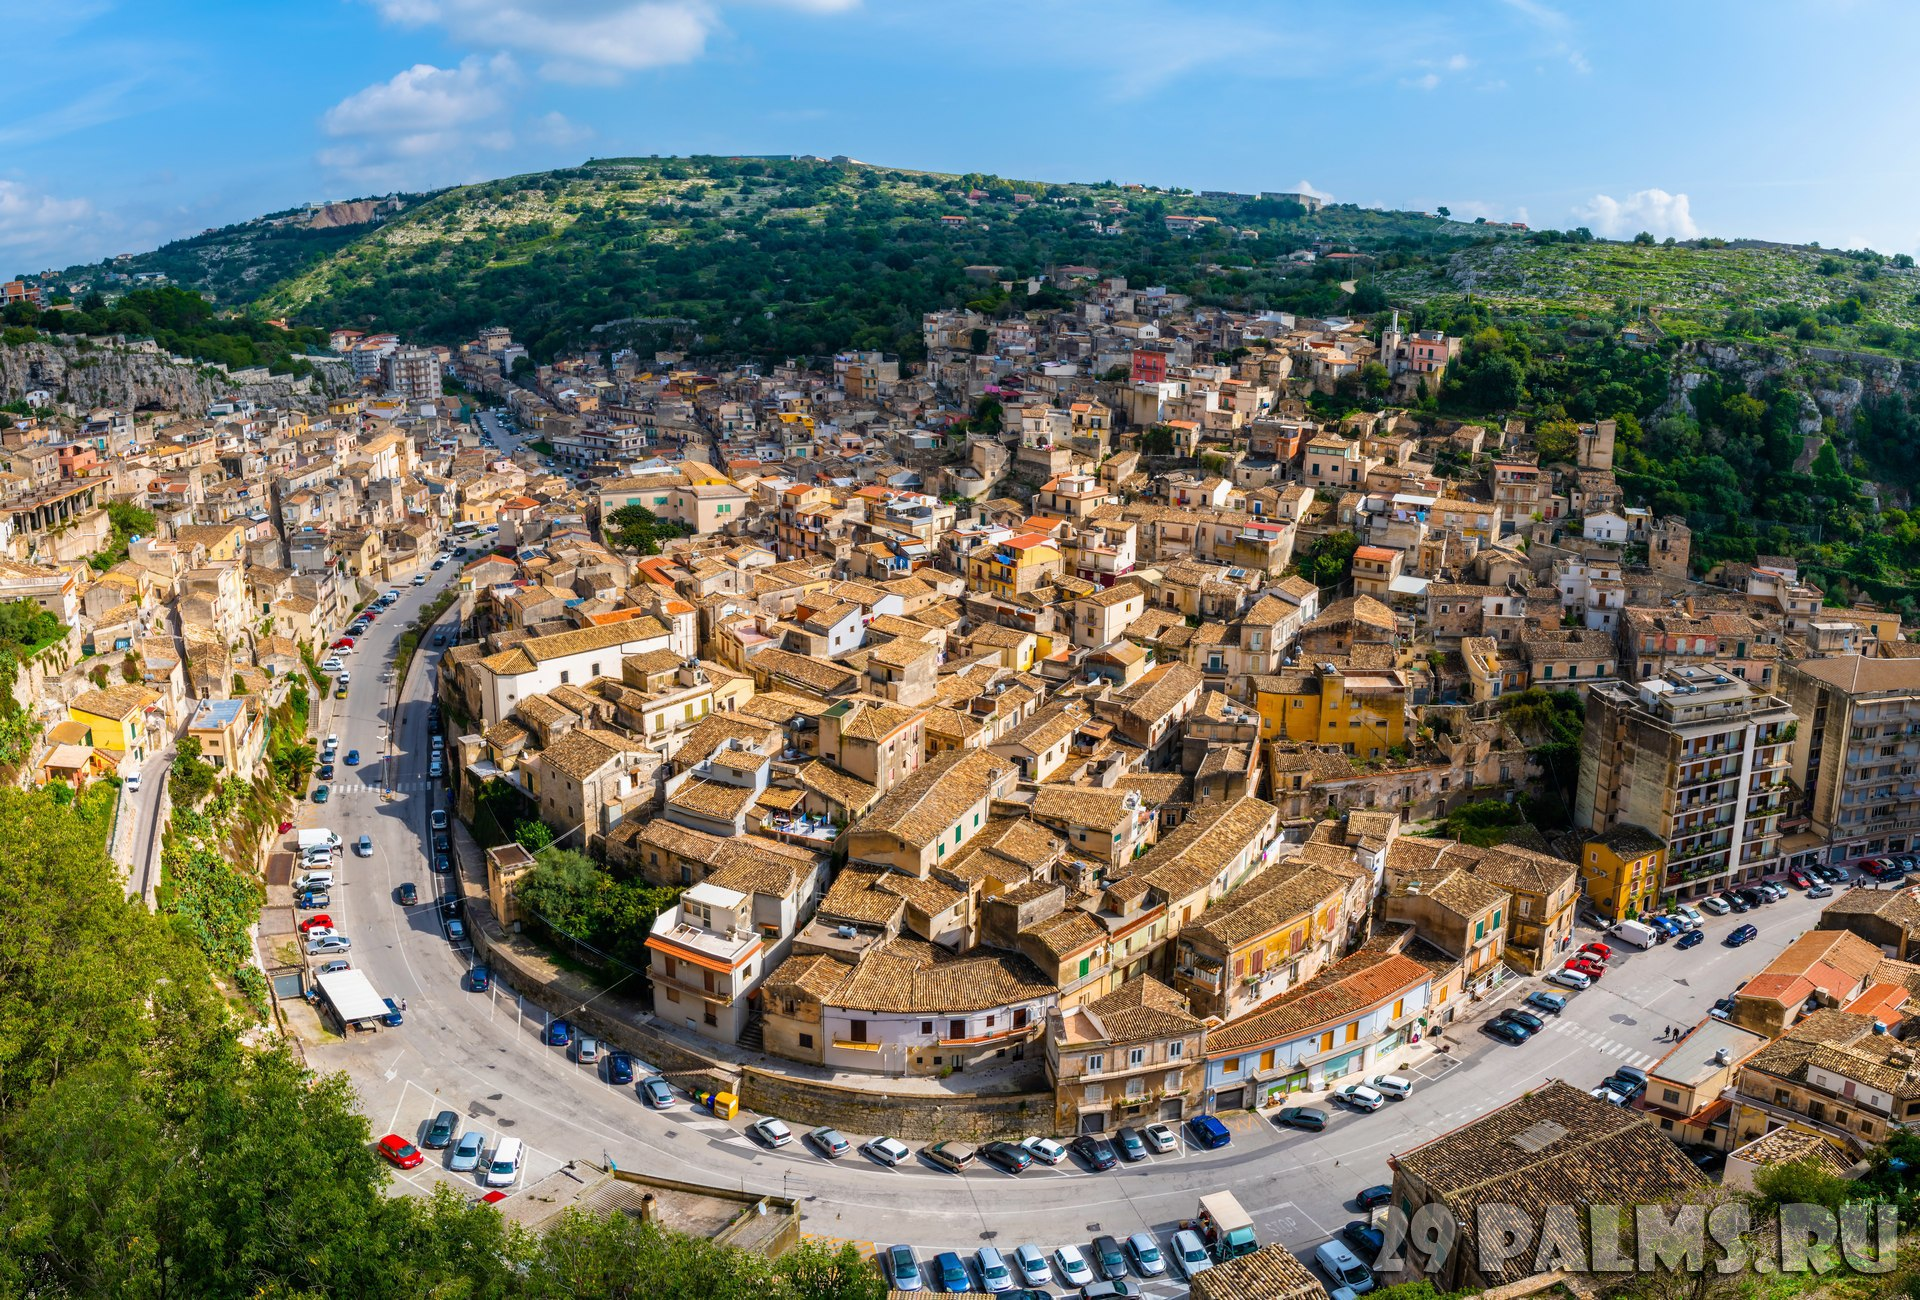 Клуб путешествий Павла Аксенова. Италия. Сицилия. Модика. Sicilian historic city Modica view from the top, Italy. Фото LxAn - Depositphotos